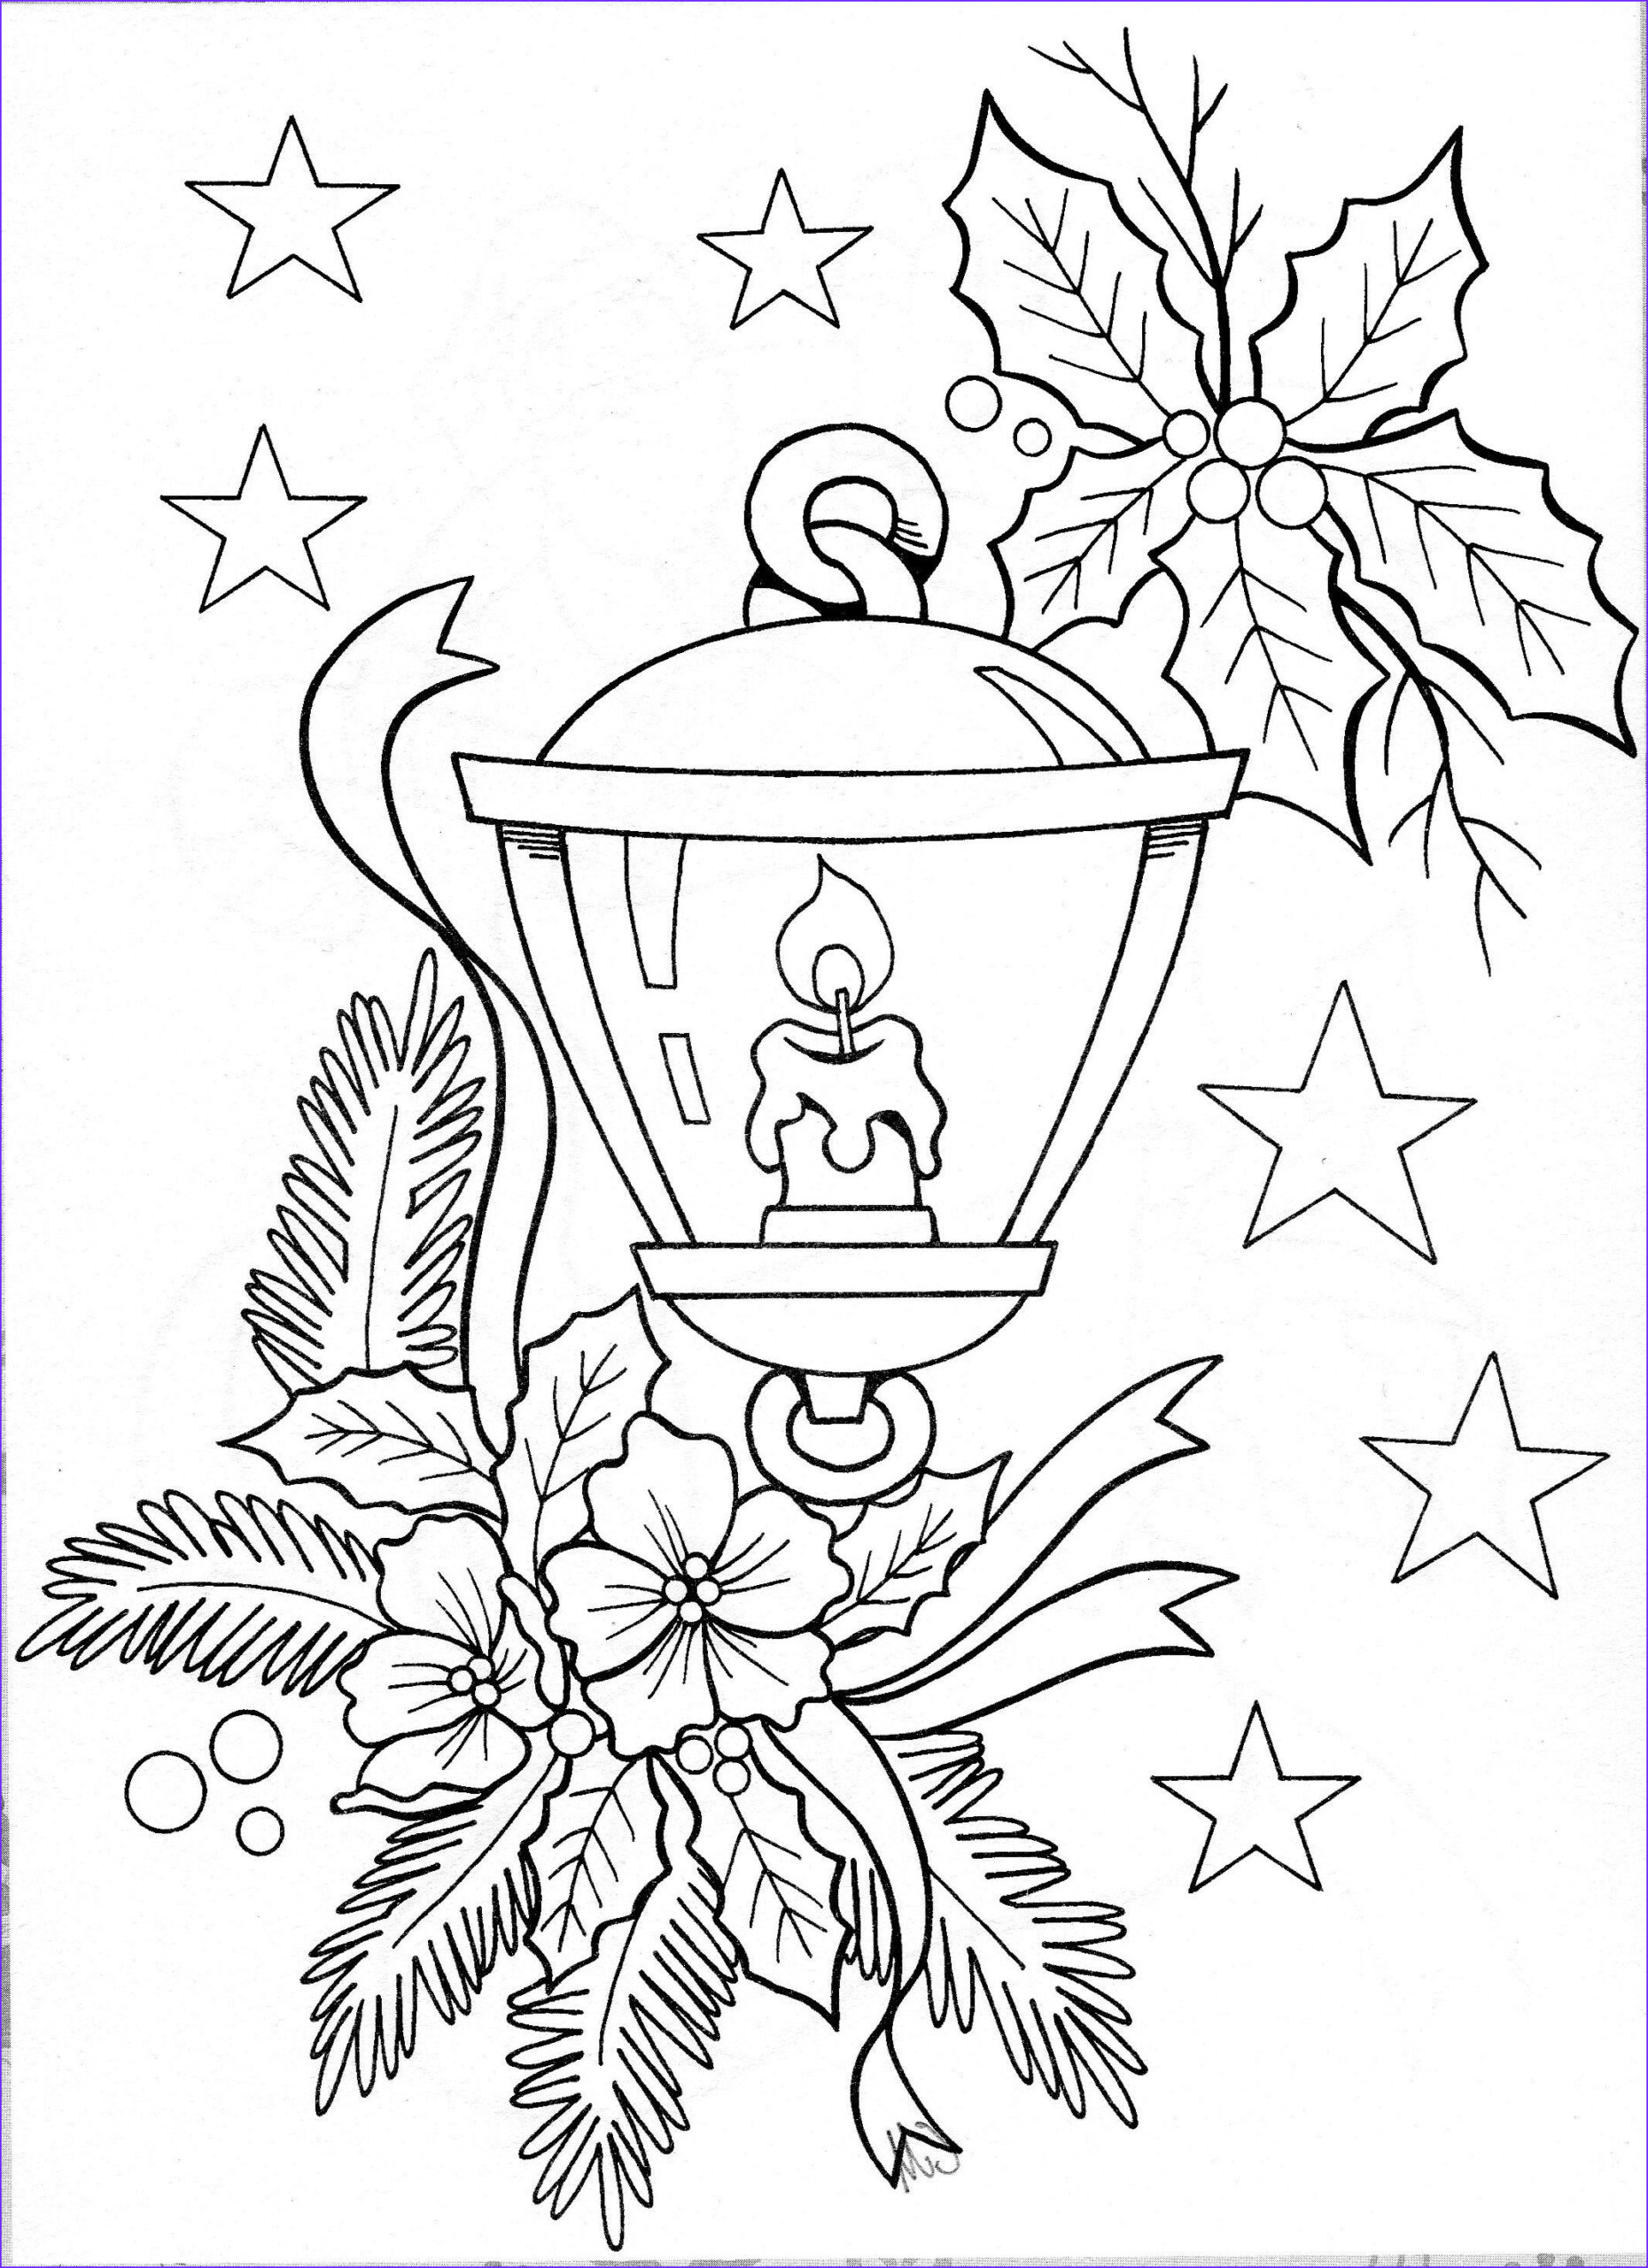 Christmas Adult Coloring Books Unique Photography Printables Coloring and Embroidery Pages …